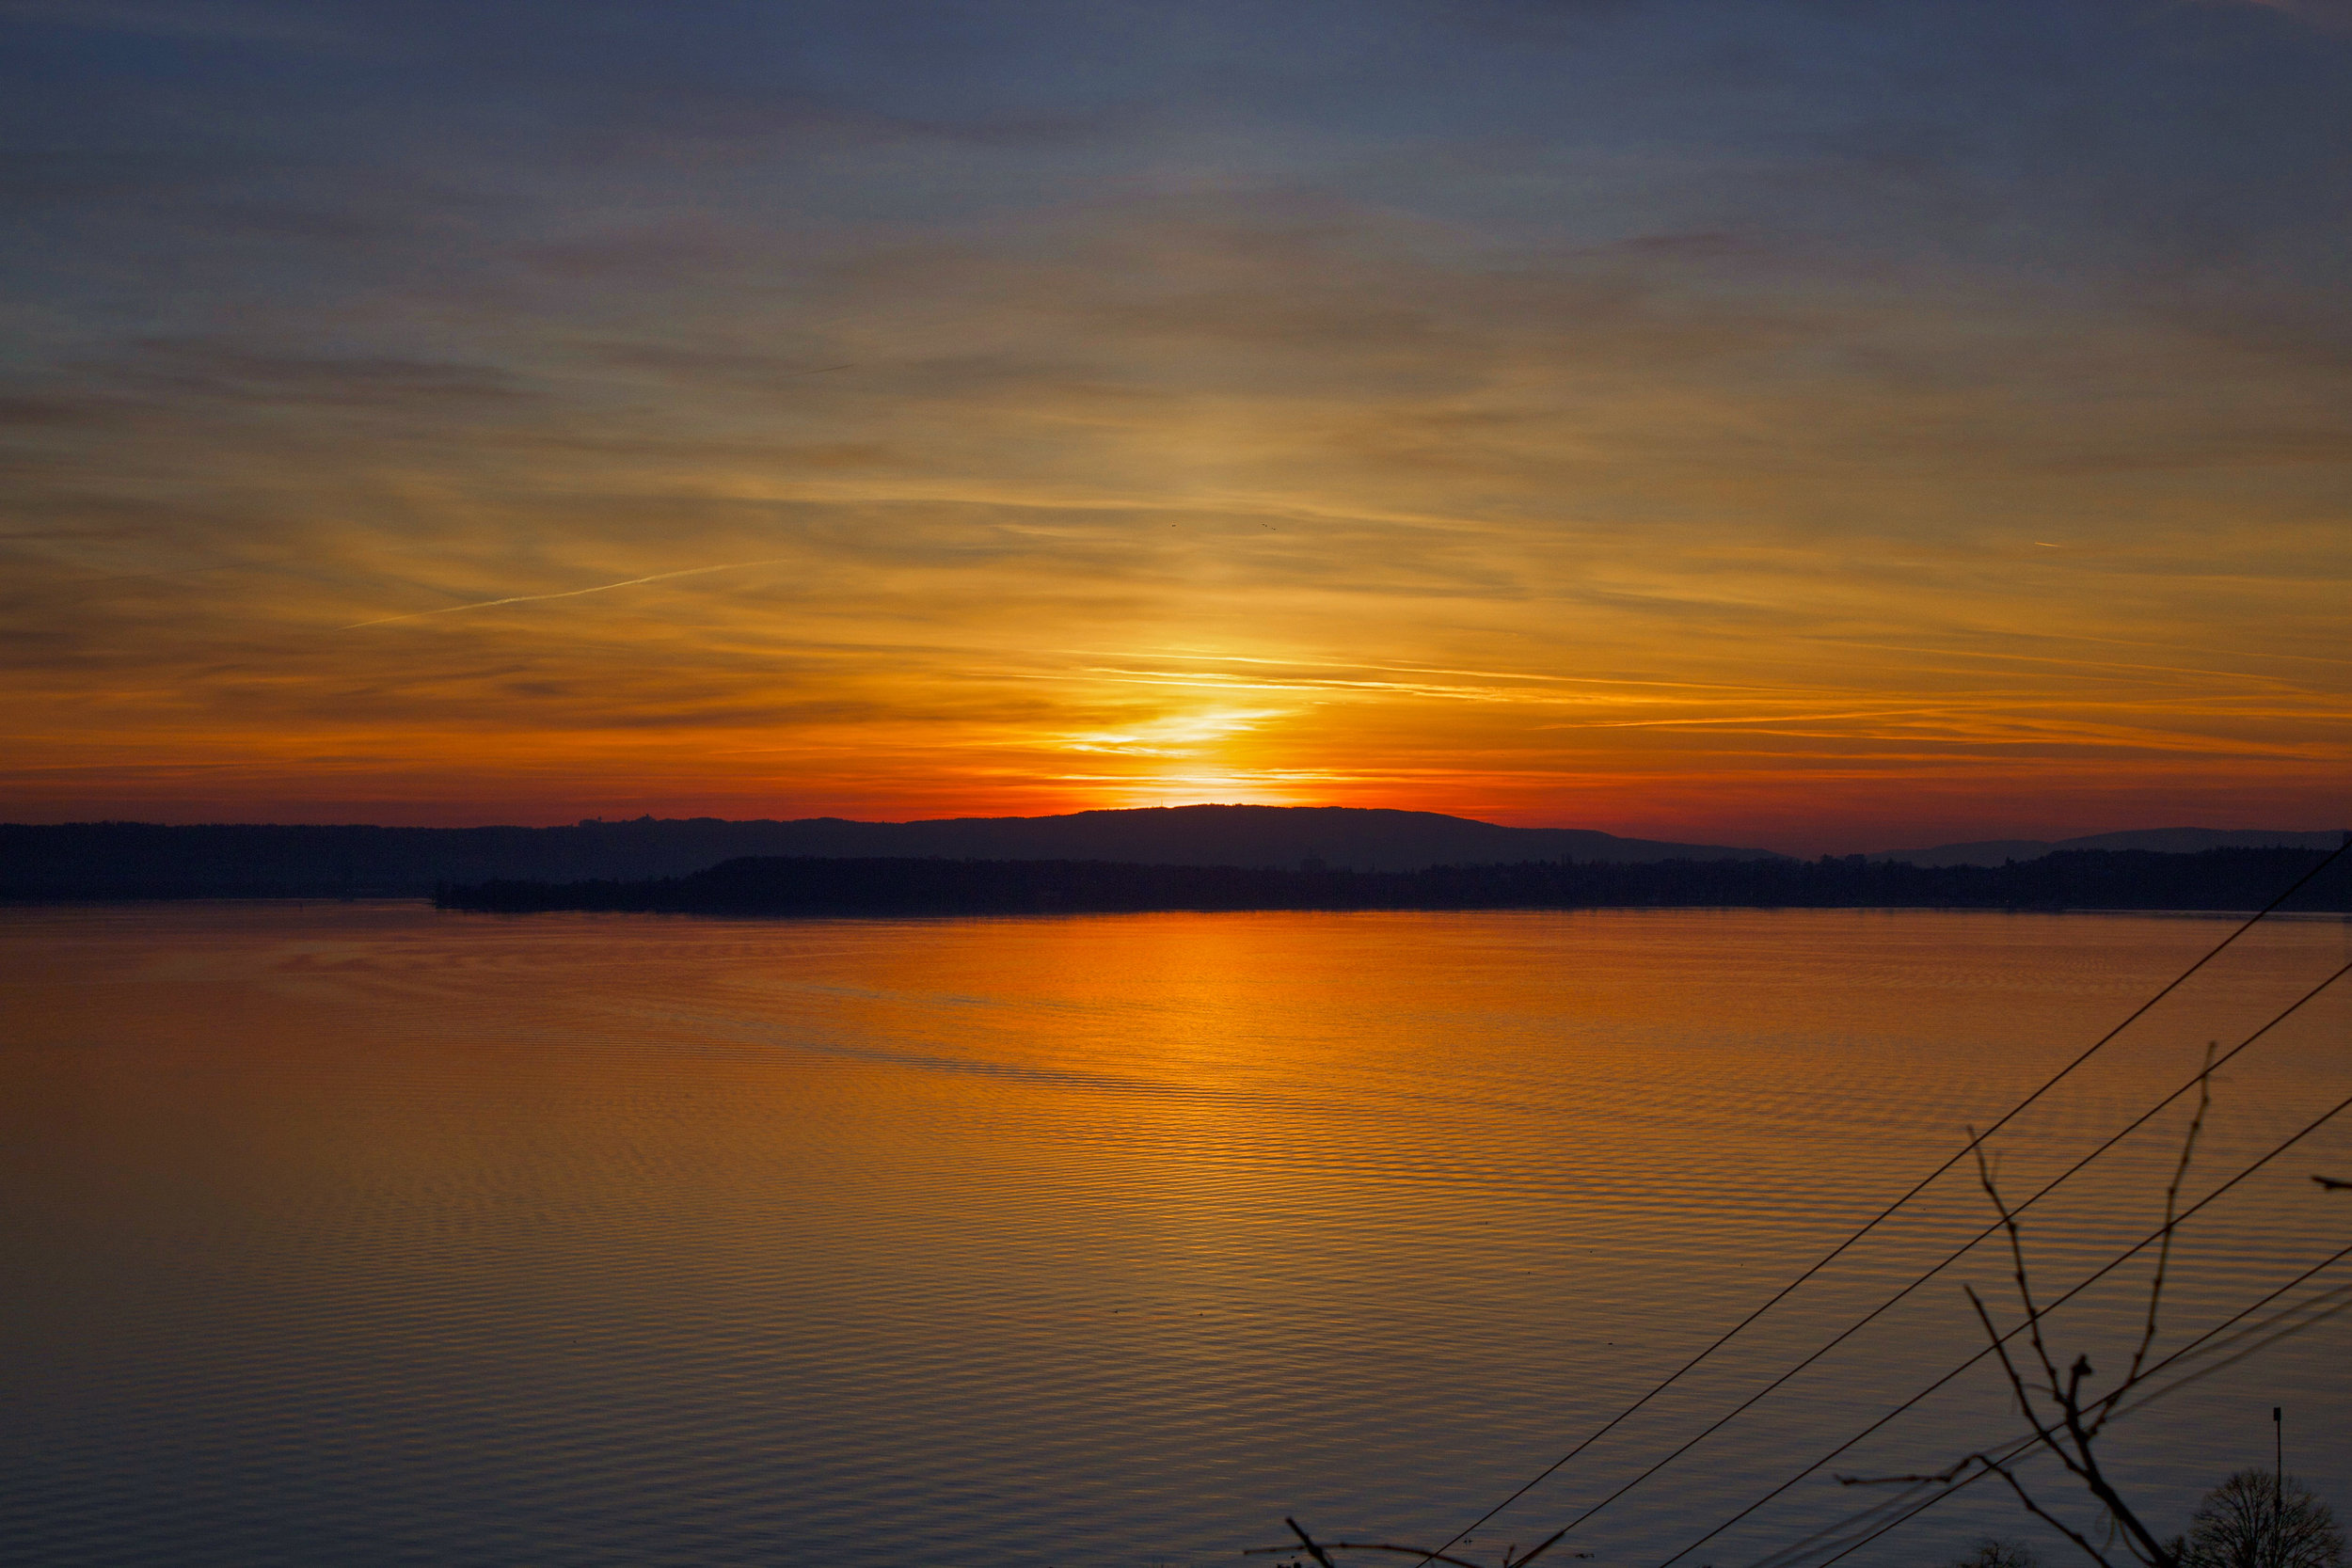 sunset over lake constance - konstanz - in germany